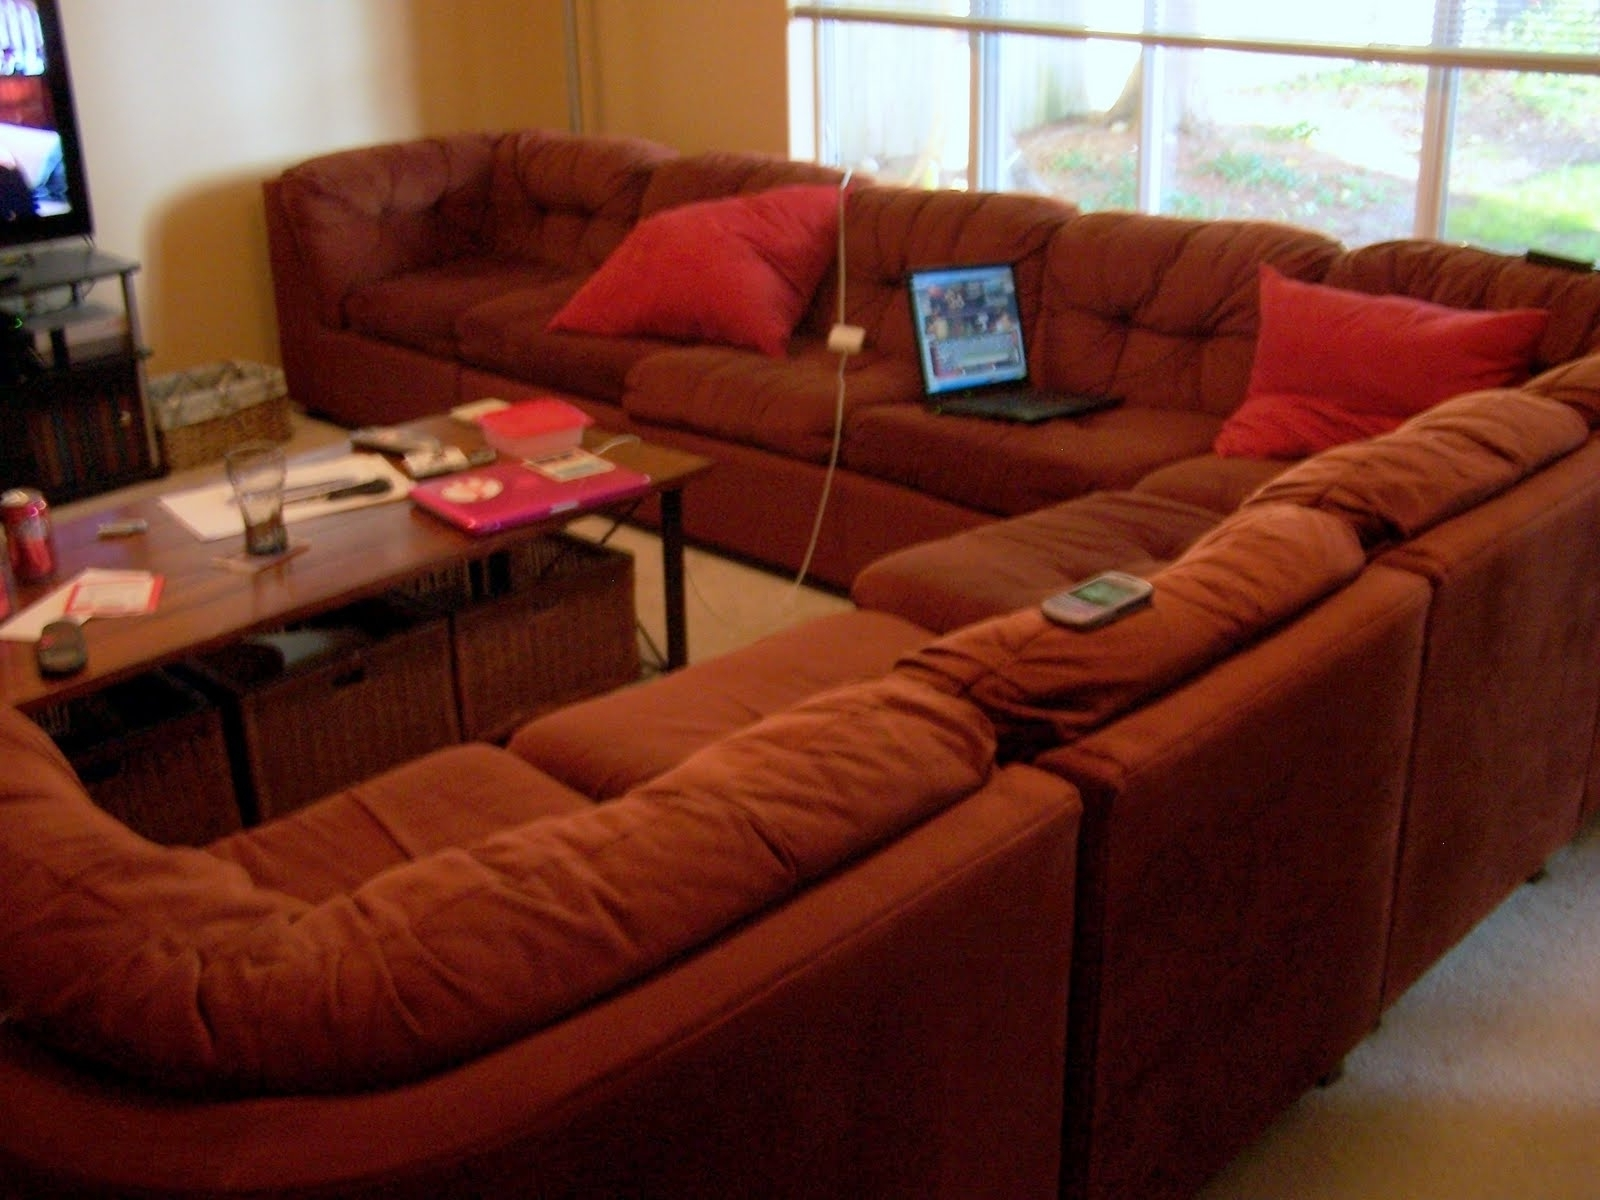 Best And Newest Stylish Sectional Sofas On Craigslist – Mediasupload For Sectional Sofas At Craigslist (View 4 of 20)